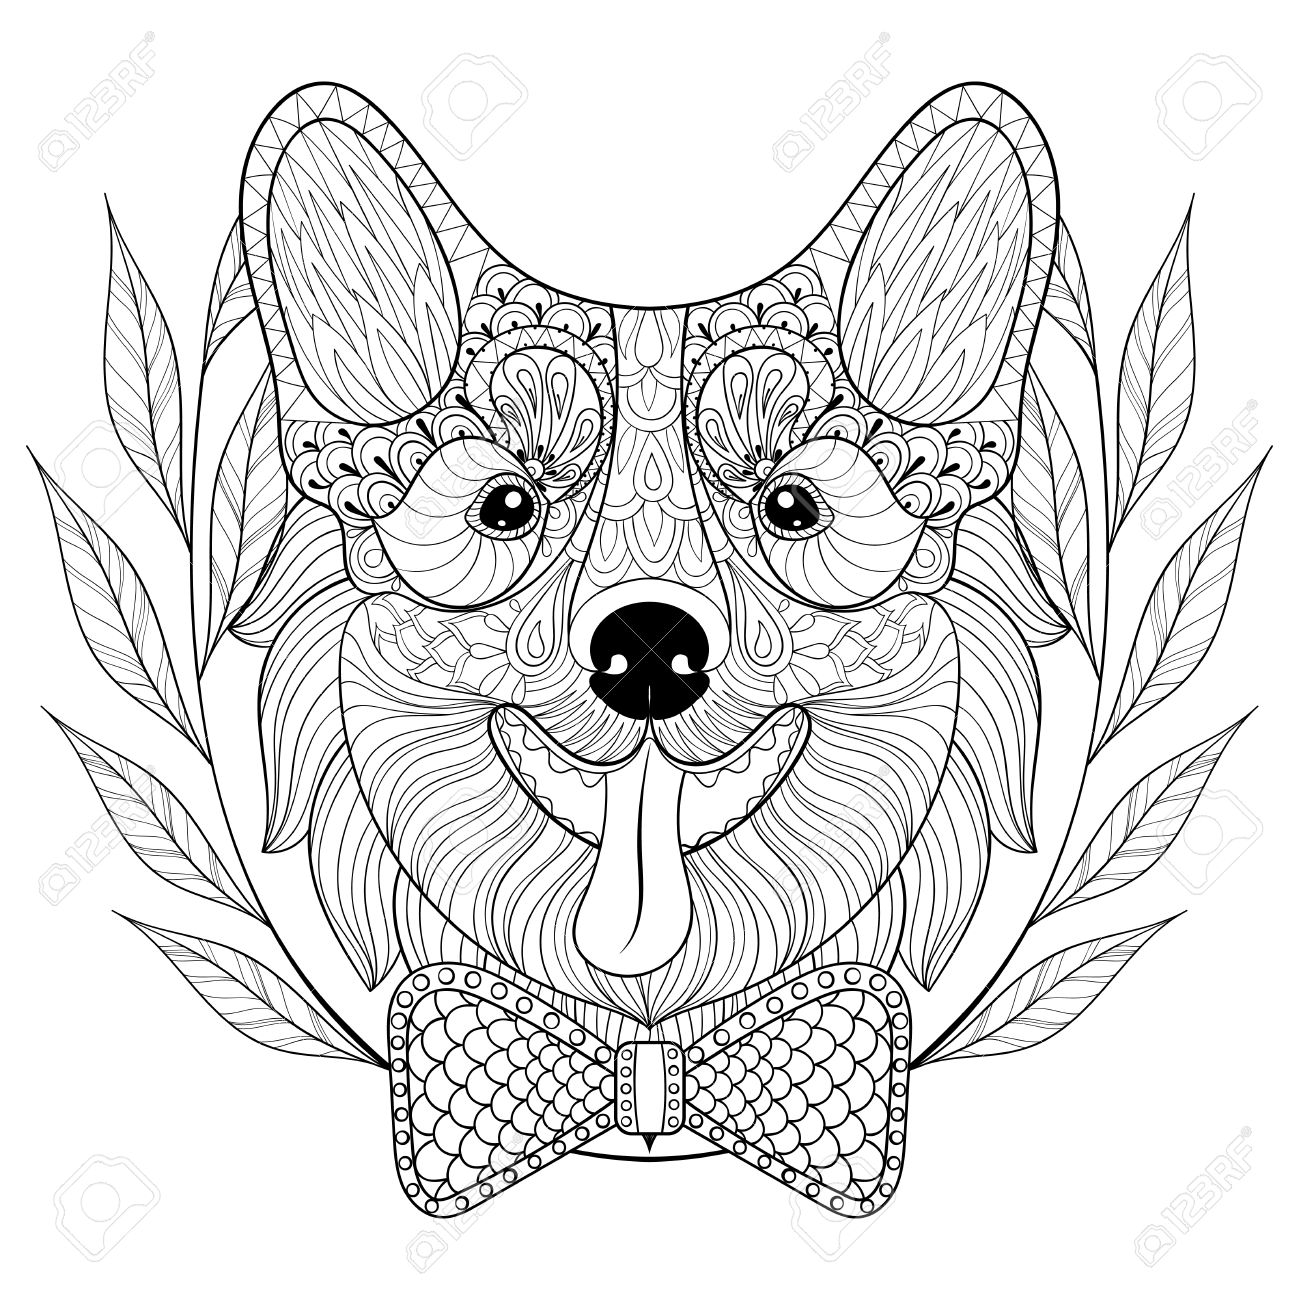 1299x1300 Welsh Corgi With Bow Tie, Wreath Frame. Happy Puppy, Pembroke